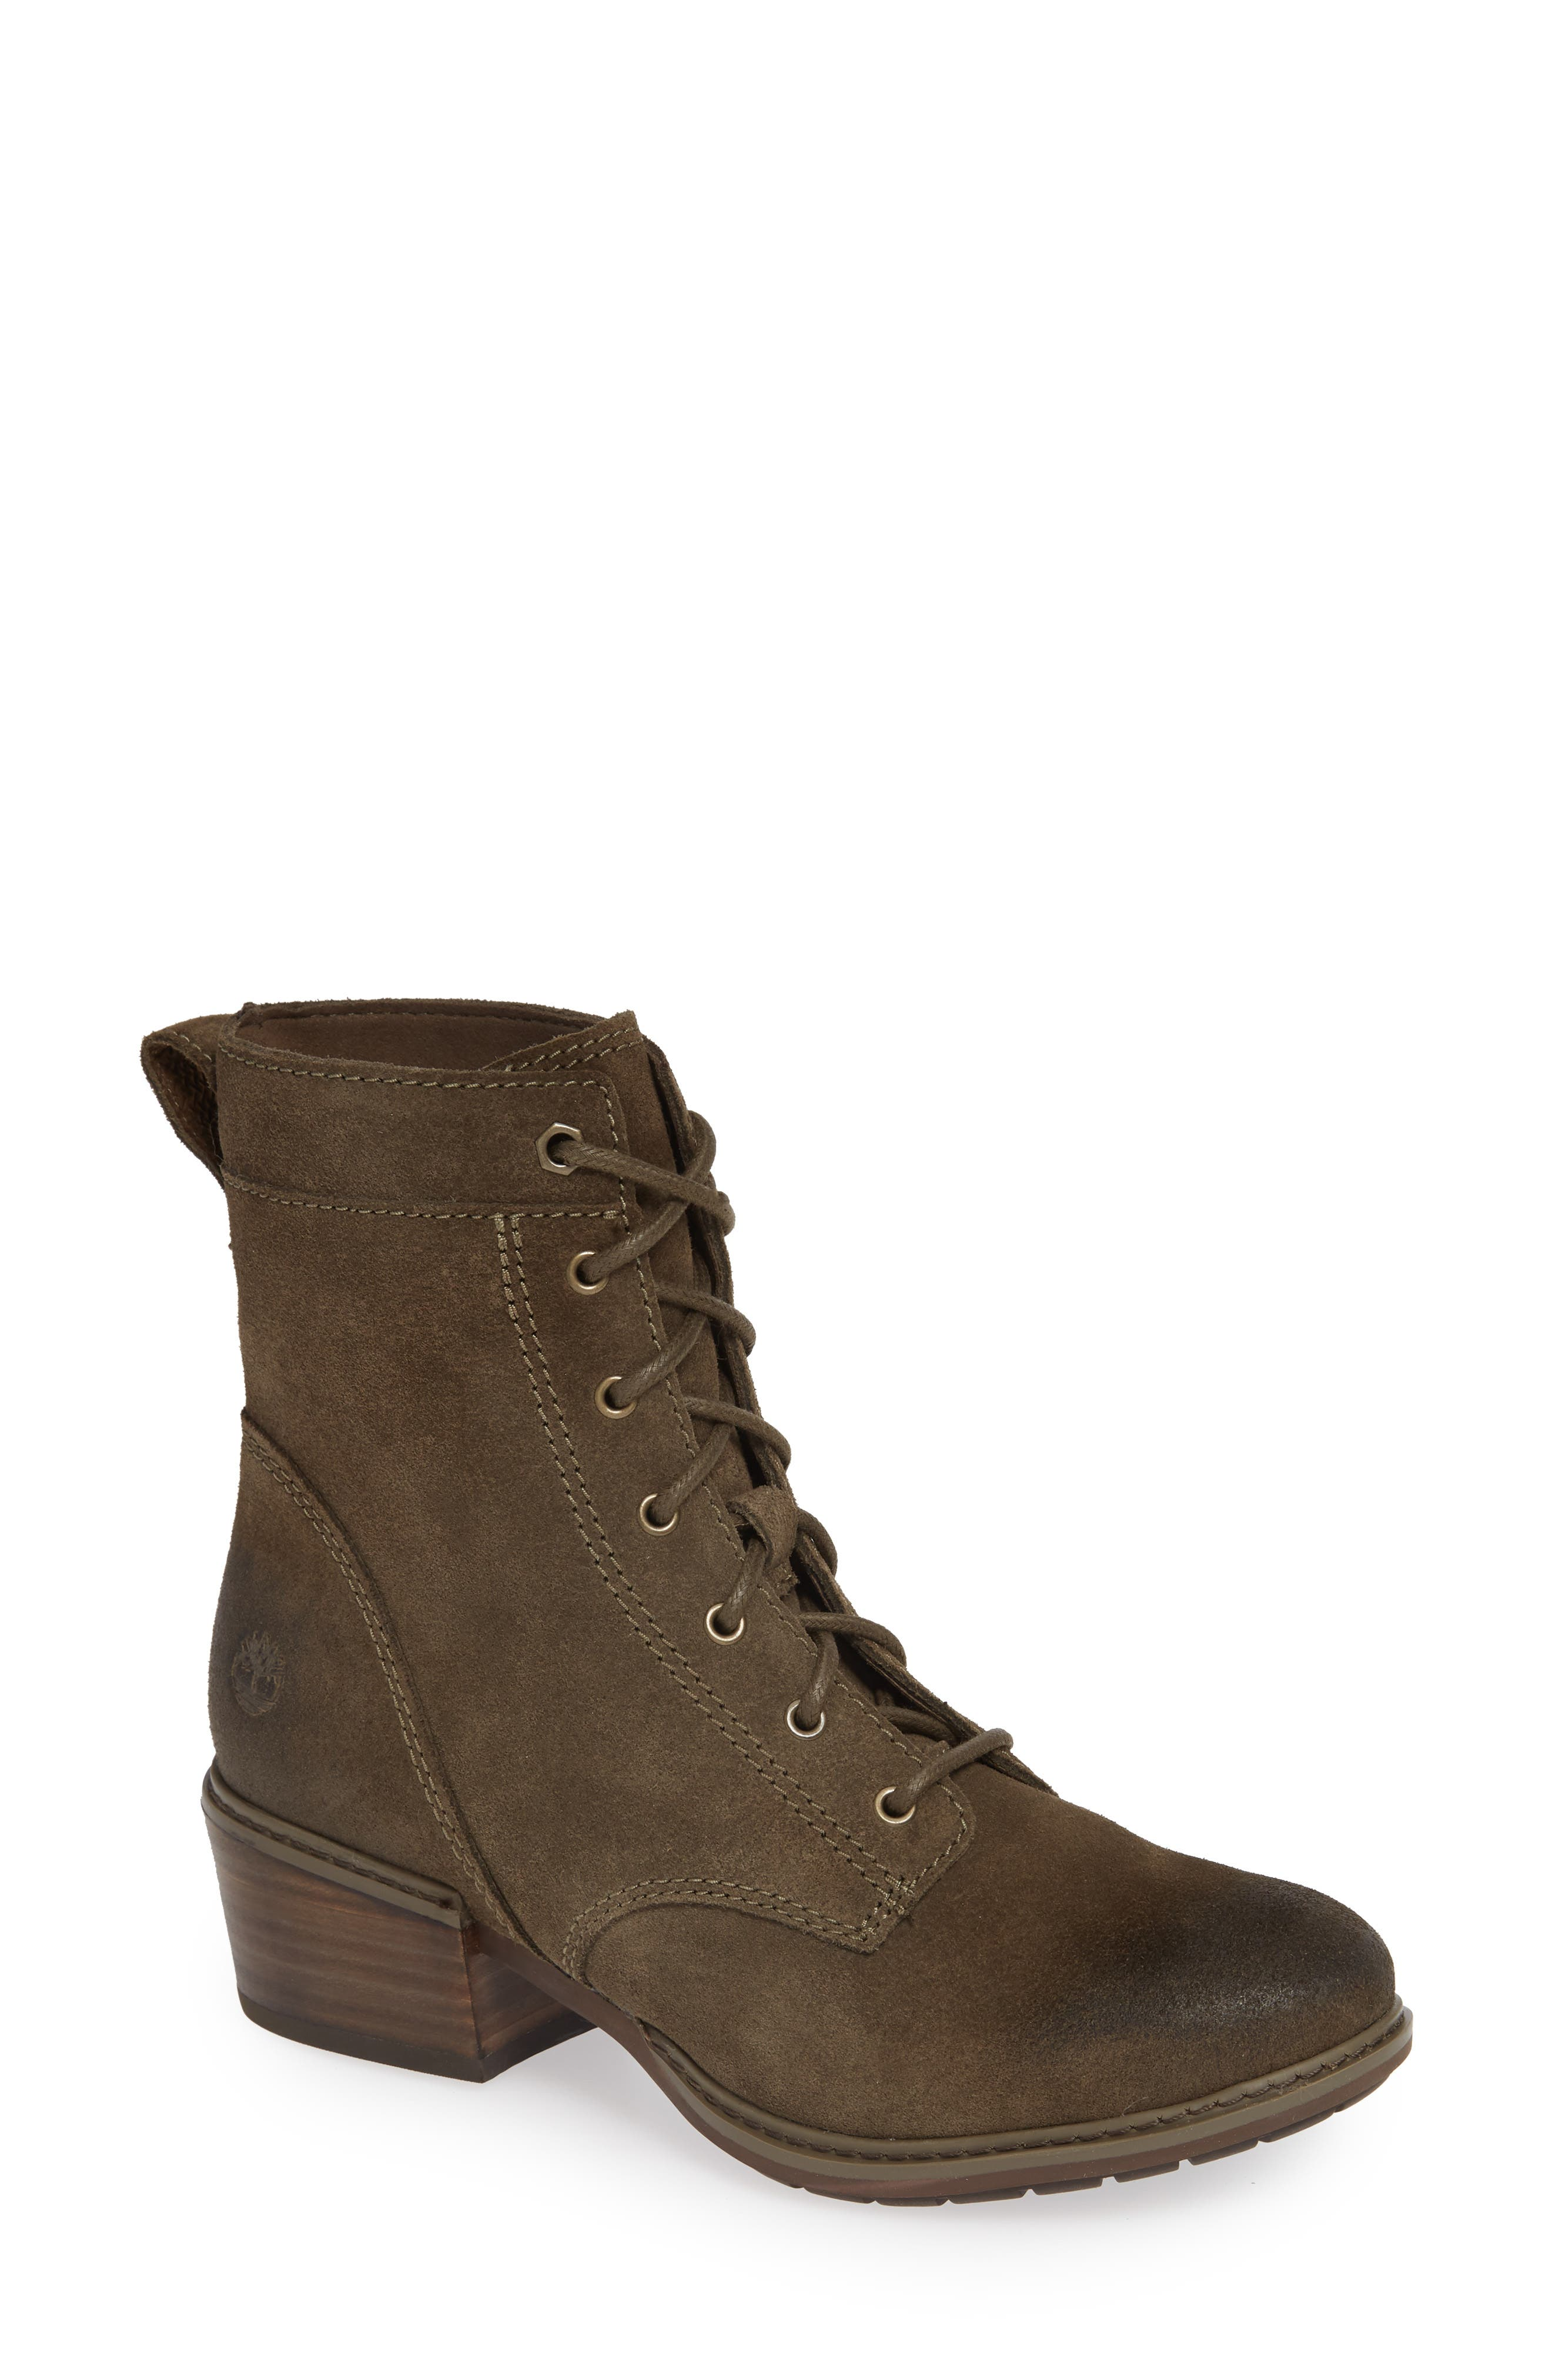 TIMBERLAND,                             Sutherlin Bay Water Resistant Lace-Up Bootie,                             Main thumbnail 1, color,                             CANTEEN SUEDE